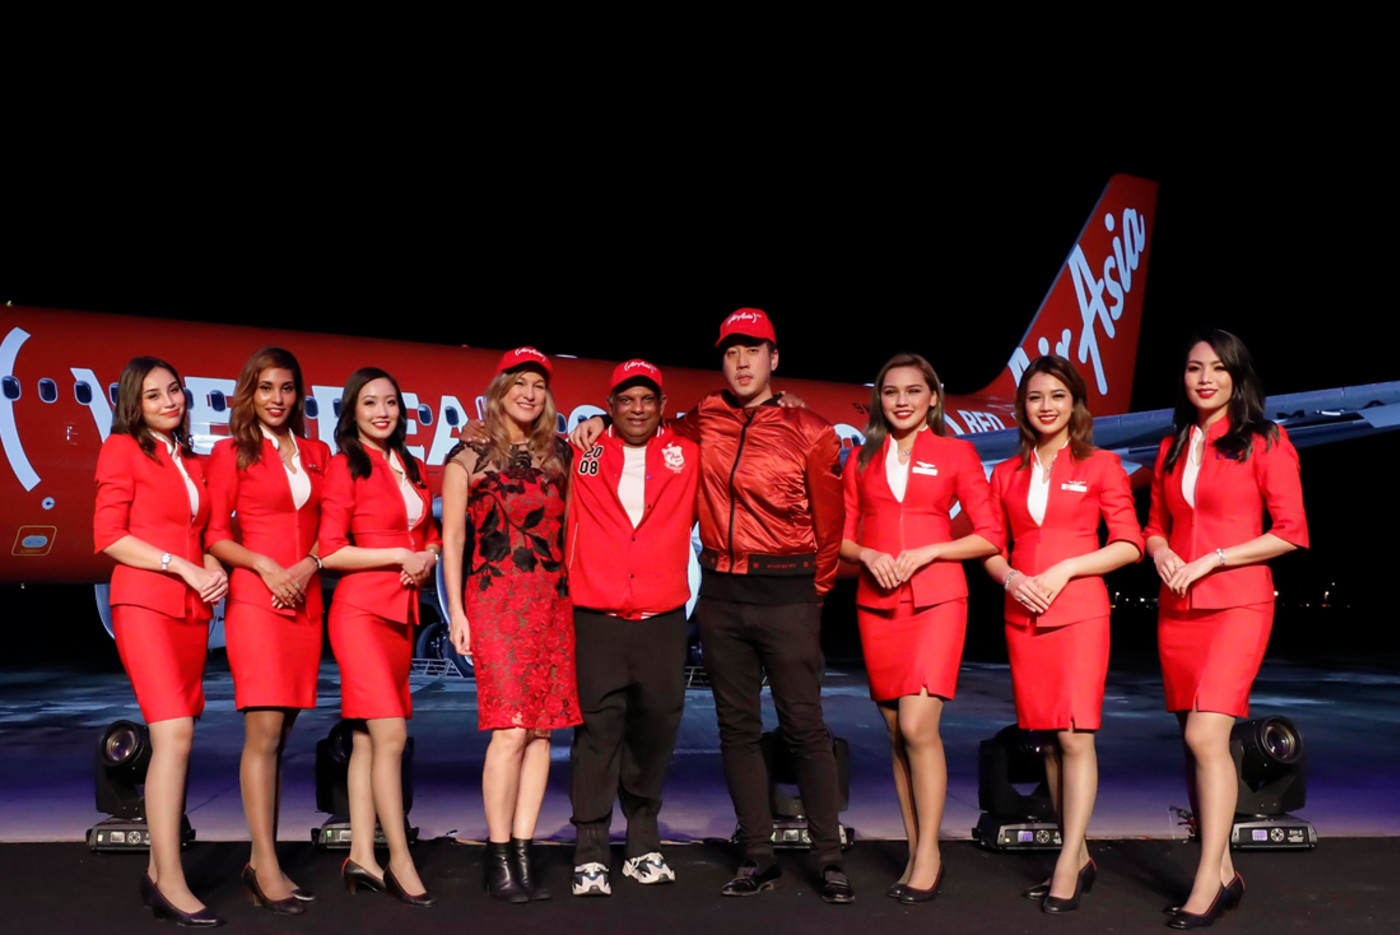 Sean Miyashiro of 88rising with the CEOs of Air Asia and RED